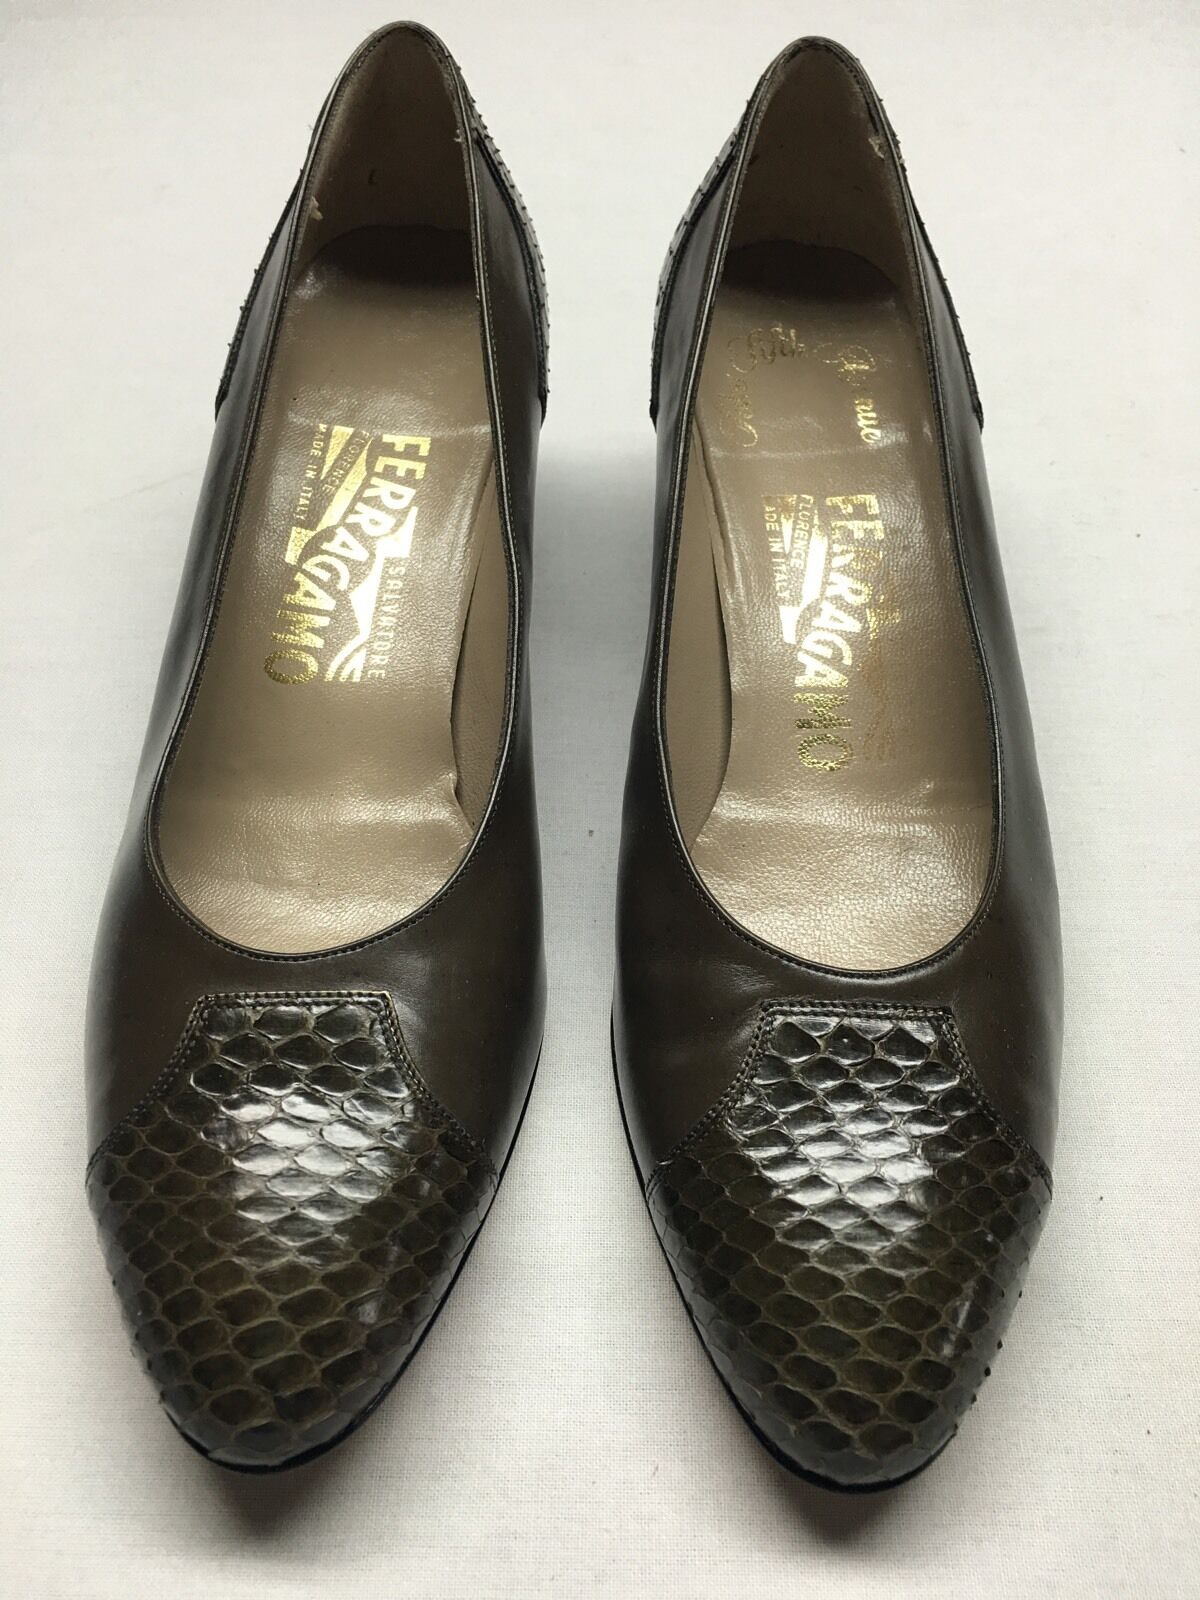 Salvatore Ferragamo Pumps 7.5 7.5 7.5 B ca2584